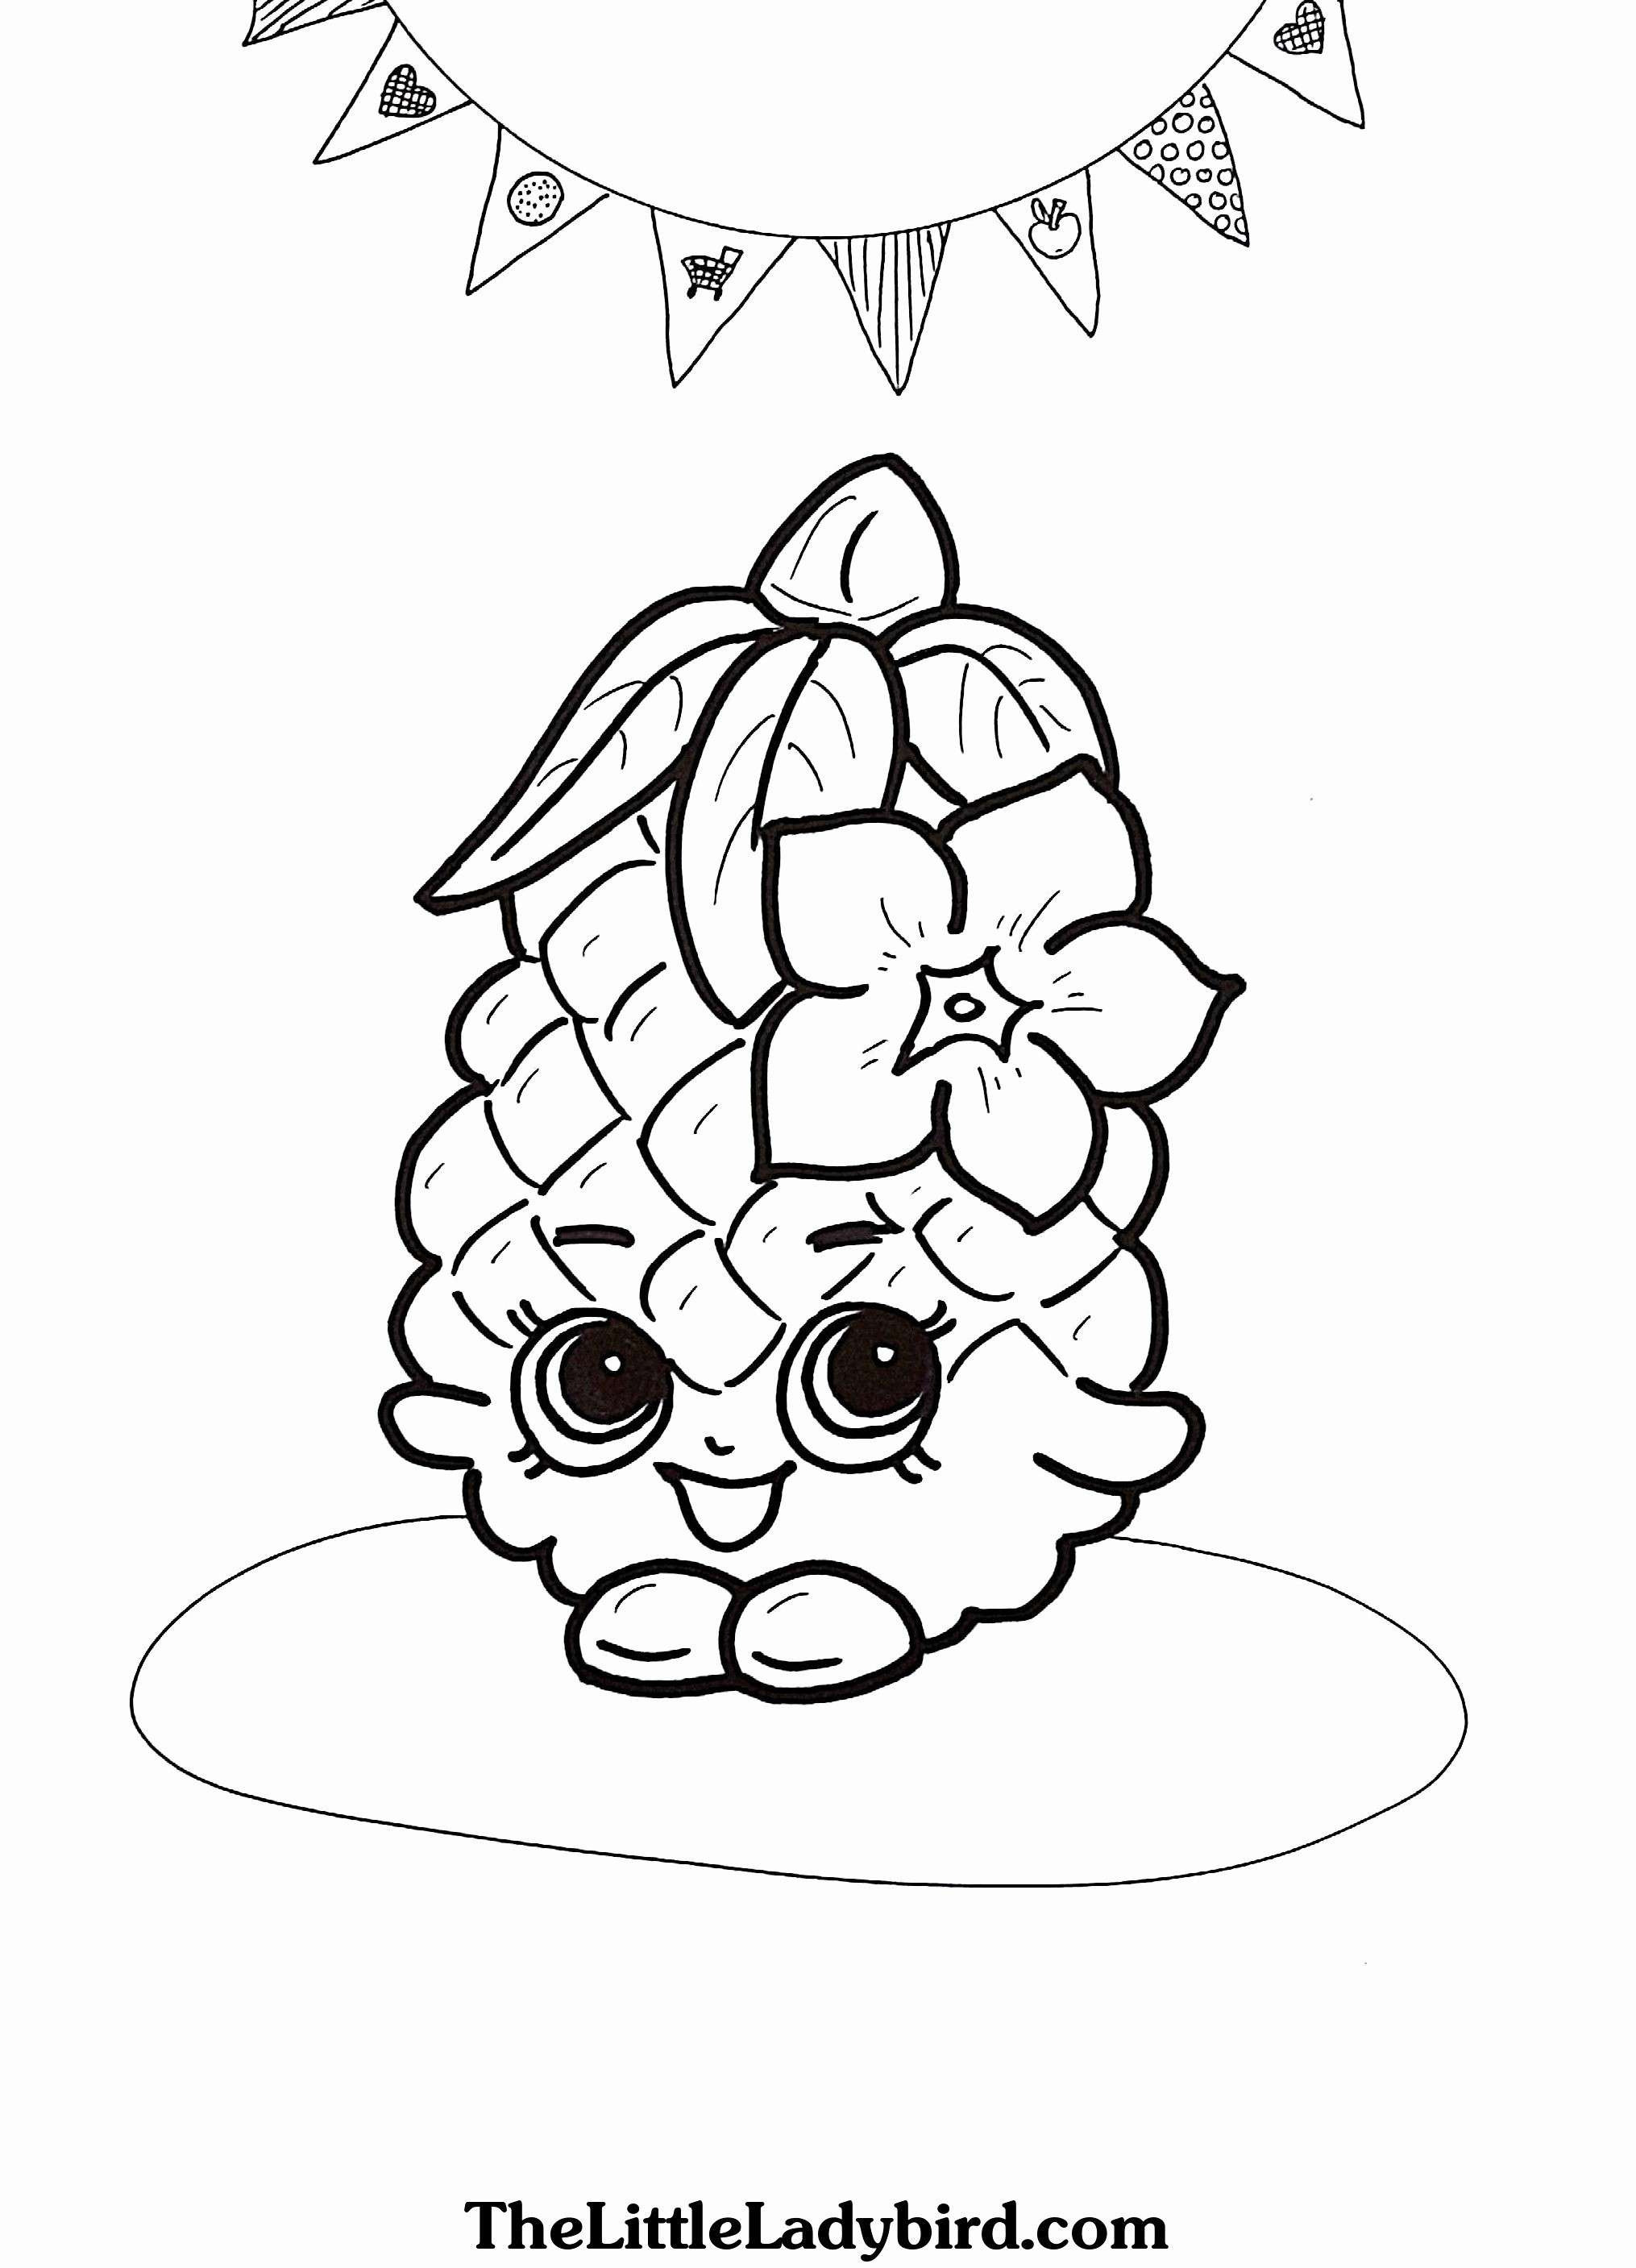 Mario Kart Ausmalbild Einzigartig Mario Coloring Pages for Boys Download Mario Cart Coloring Pages Das Bild